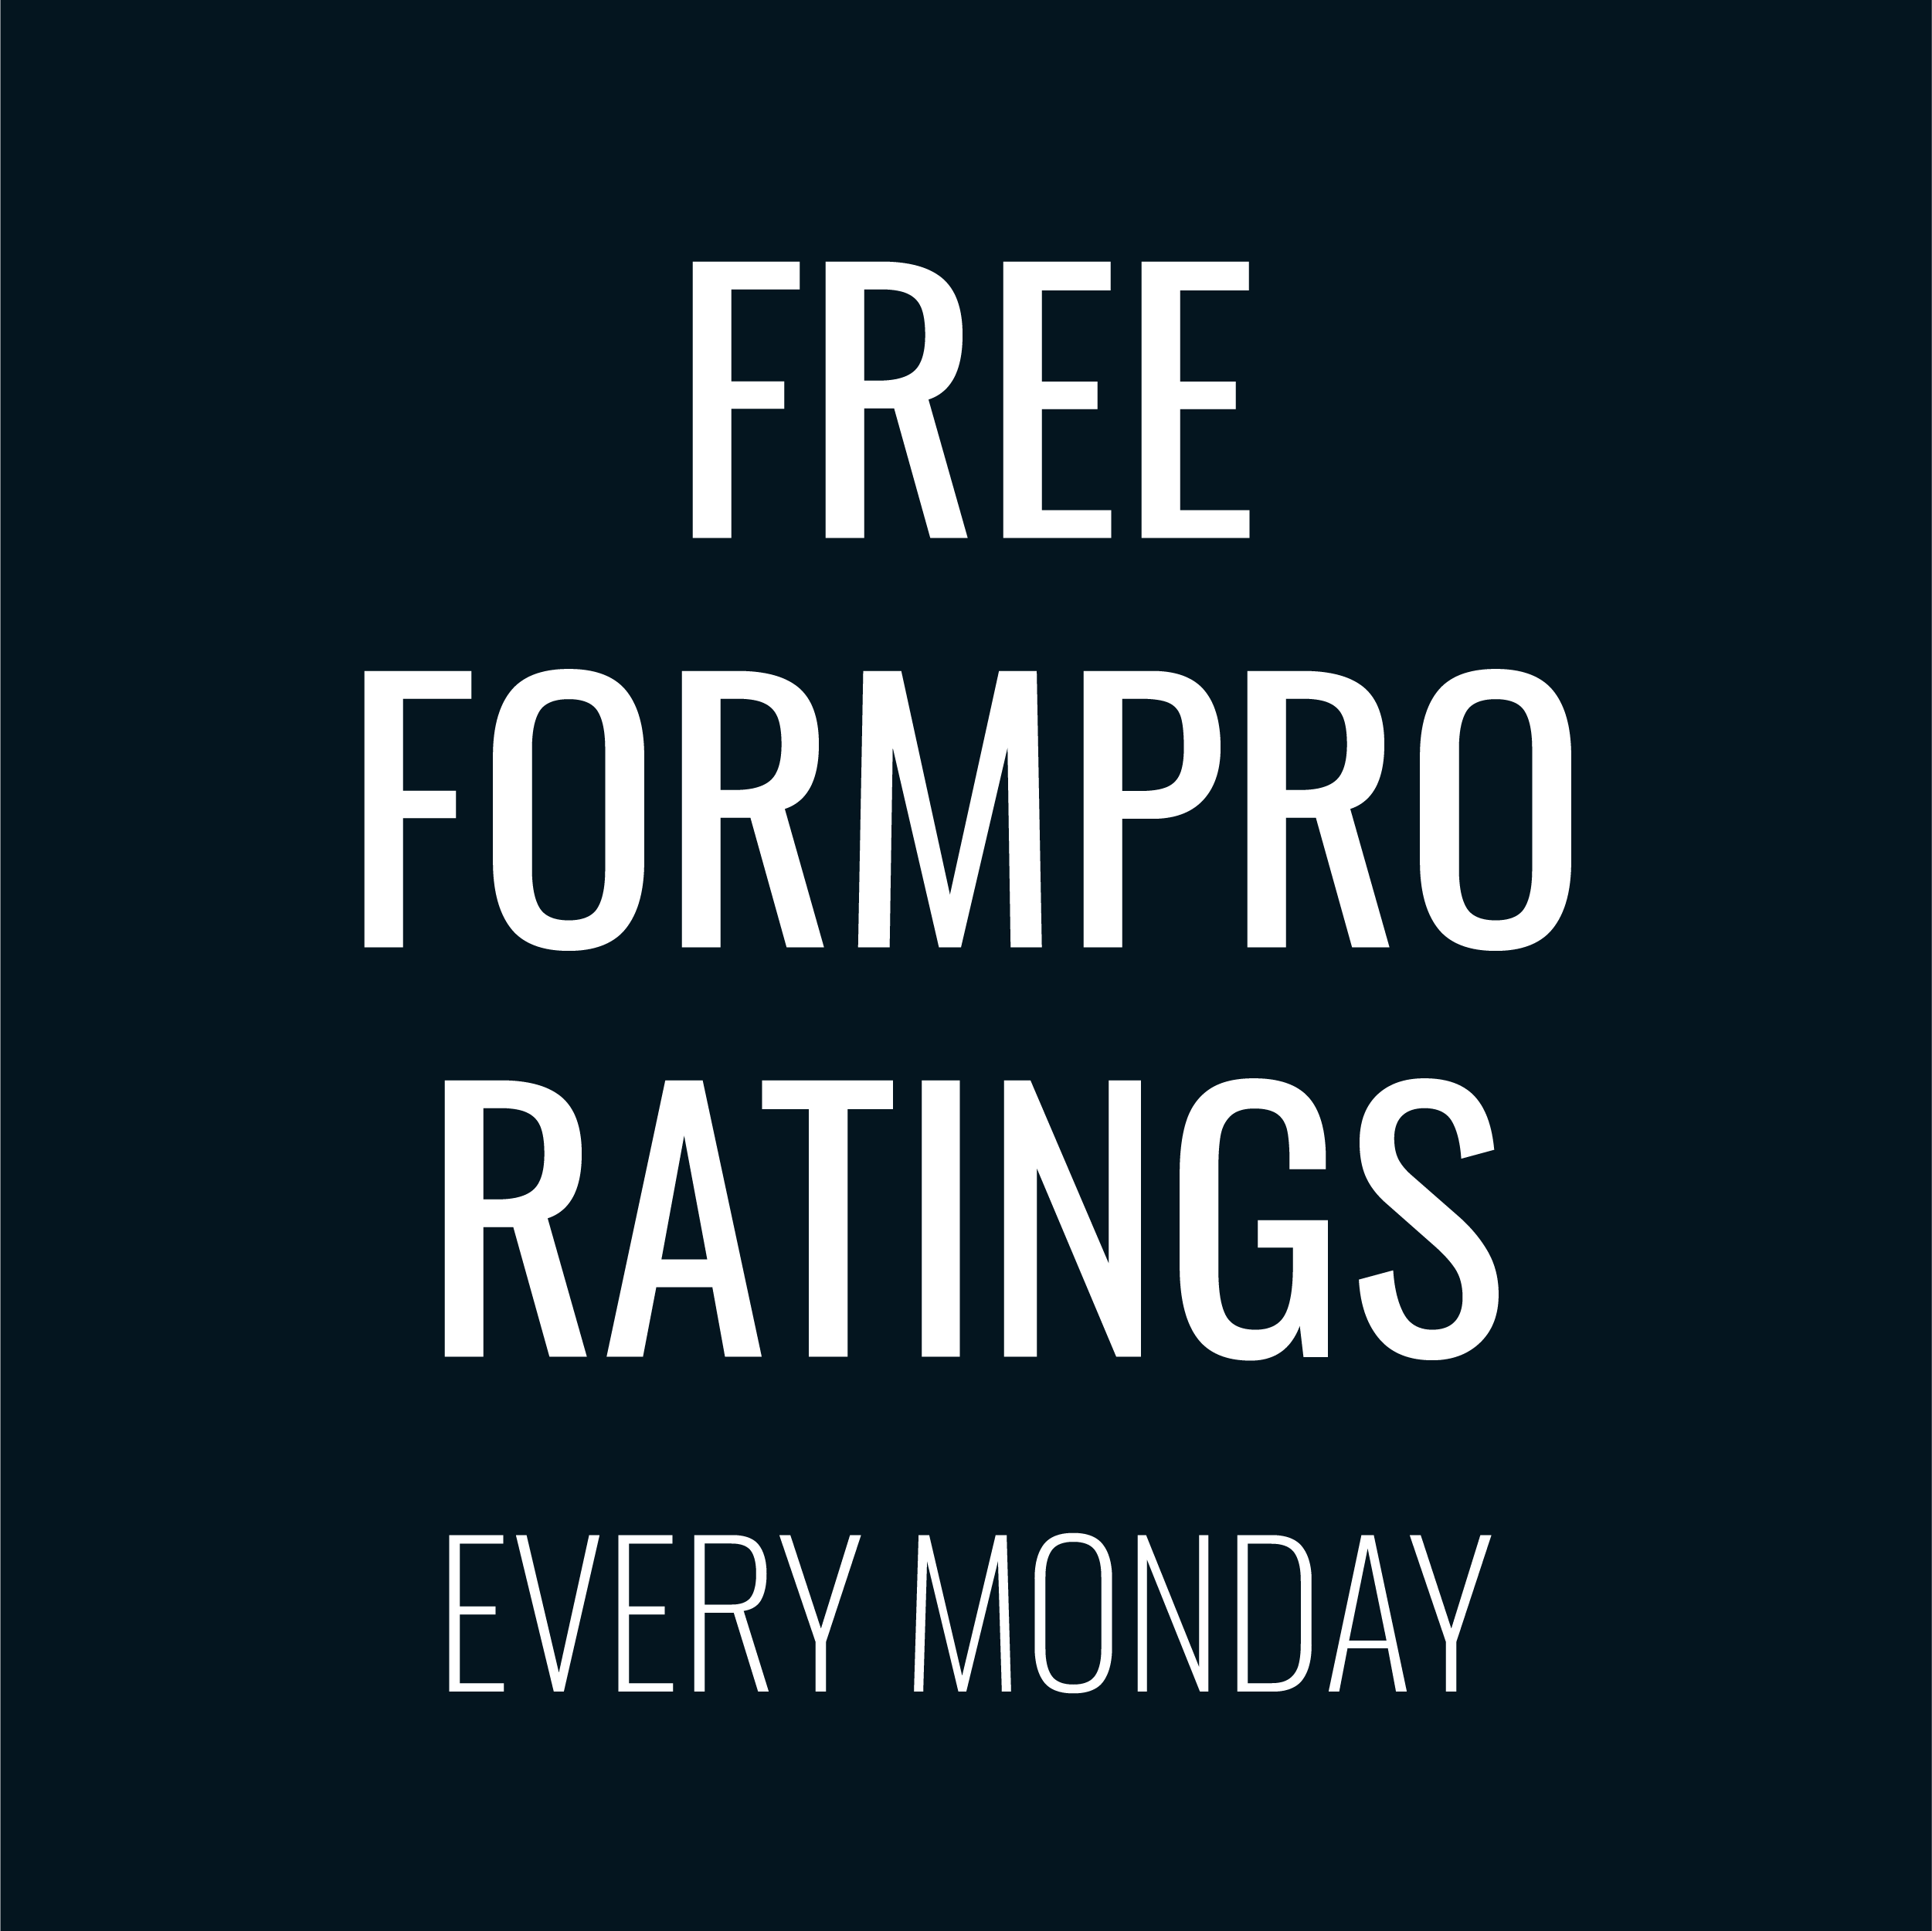 Free Greyhound Ratings Monday and Tuesday!